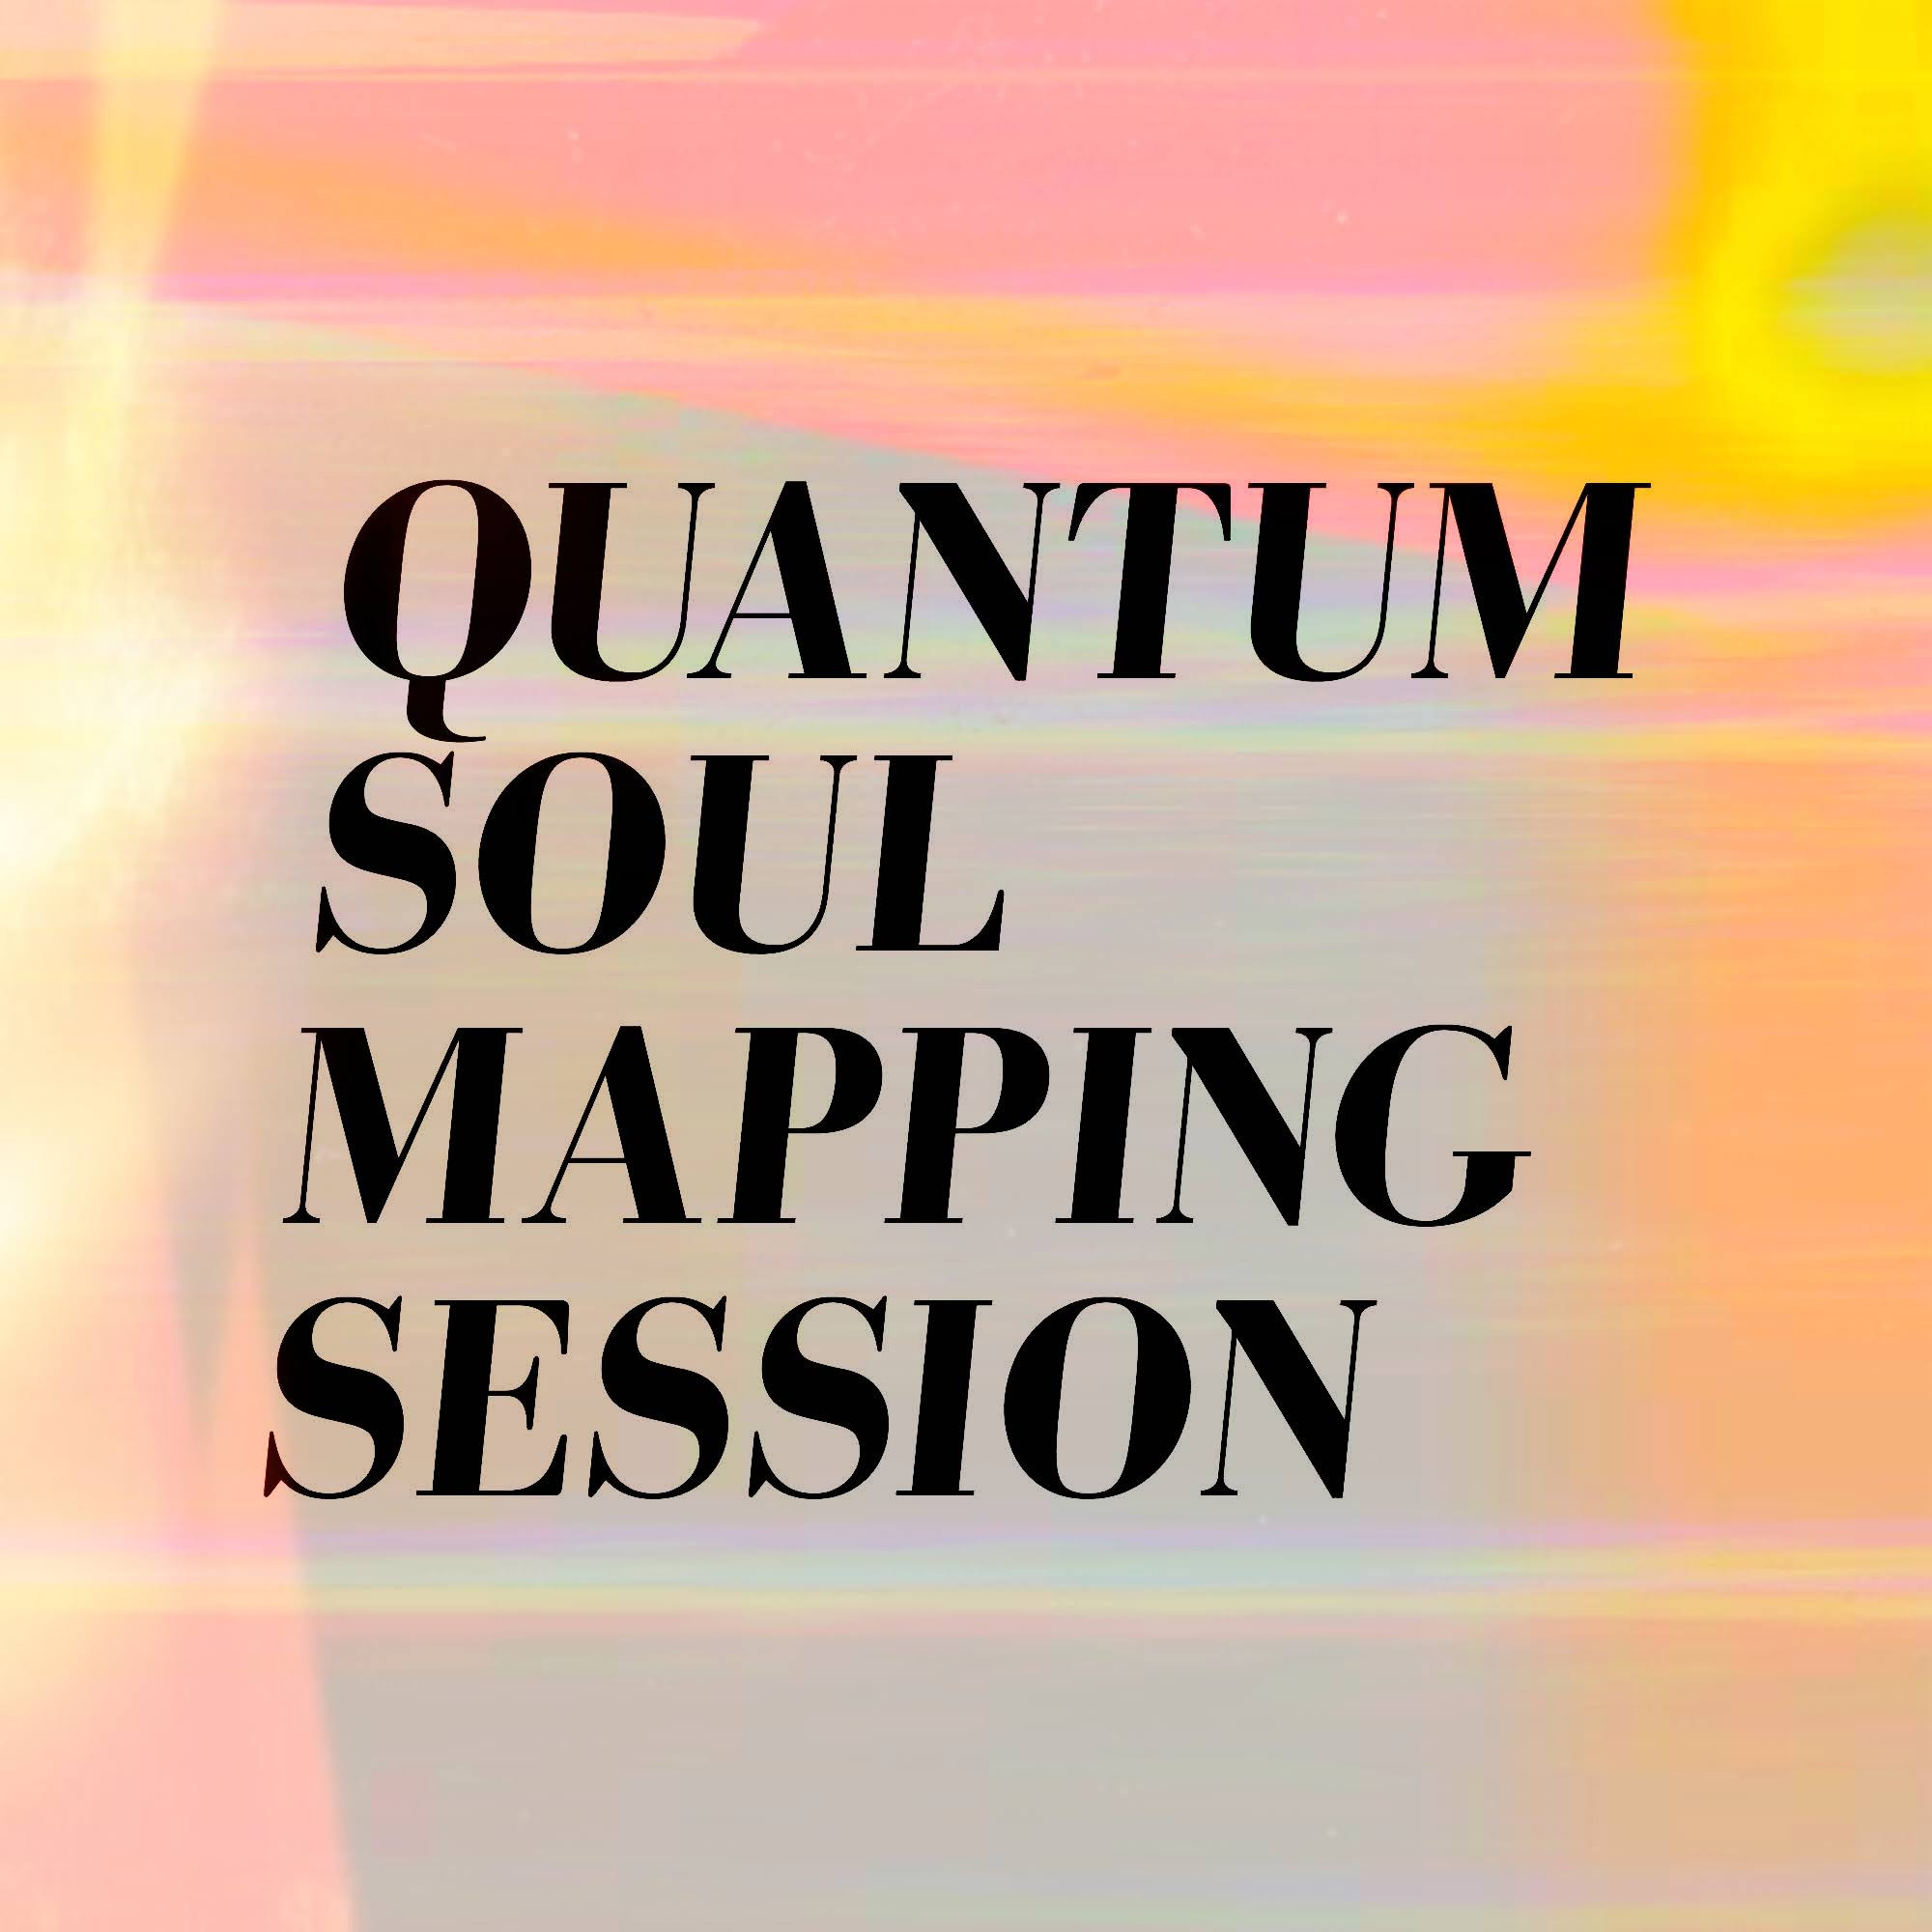 Quantum Soul Mapping Session